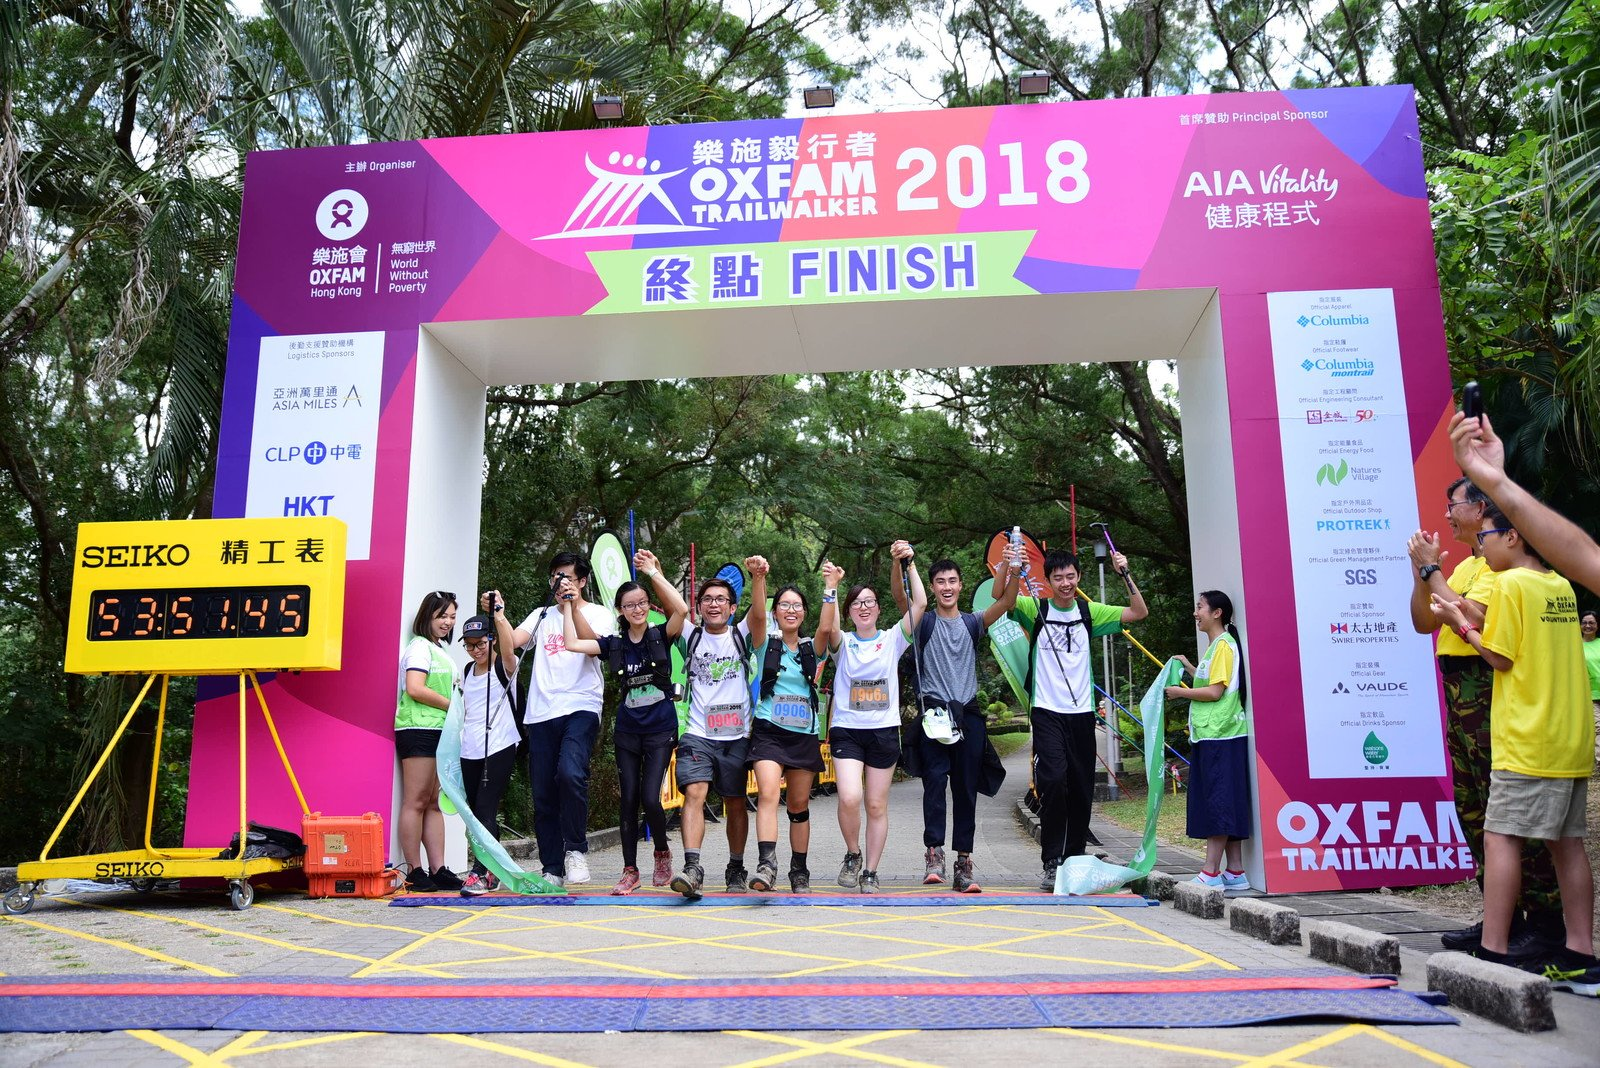 Stephen Fisher, Acting Director General of Oxfam Hong Kong, greeting the last team, which completed the 100 km trail in 47 hours 51 minutes, at the Finish Point.